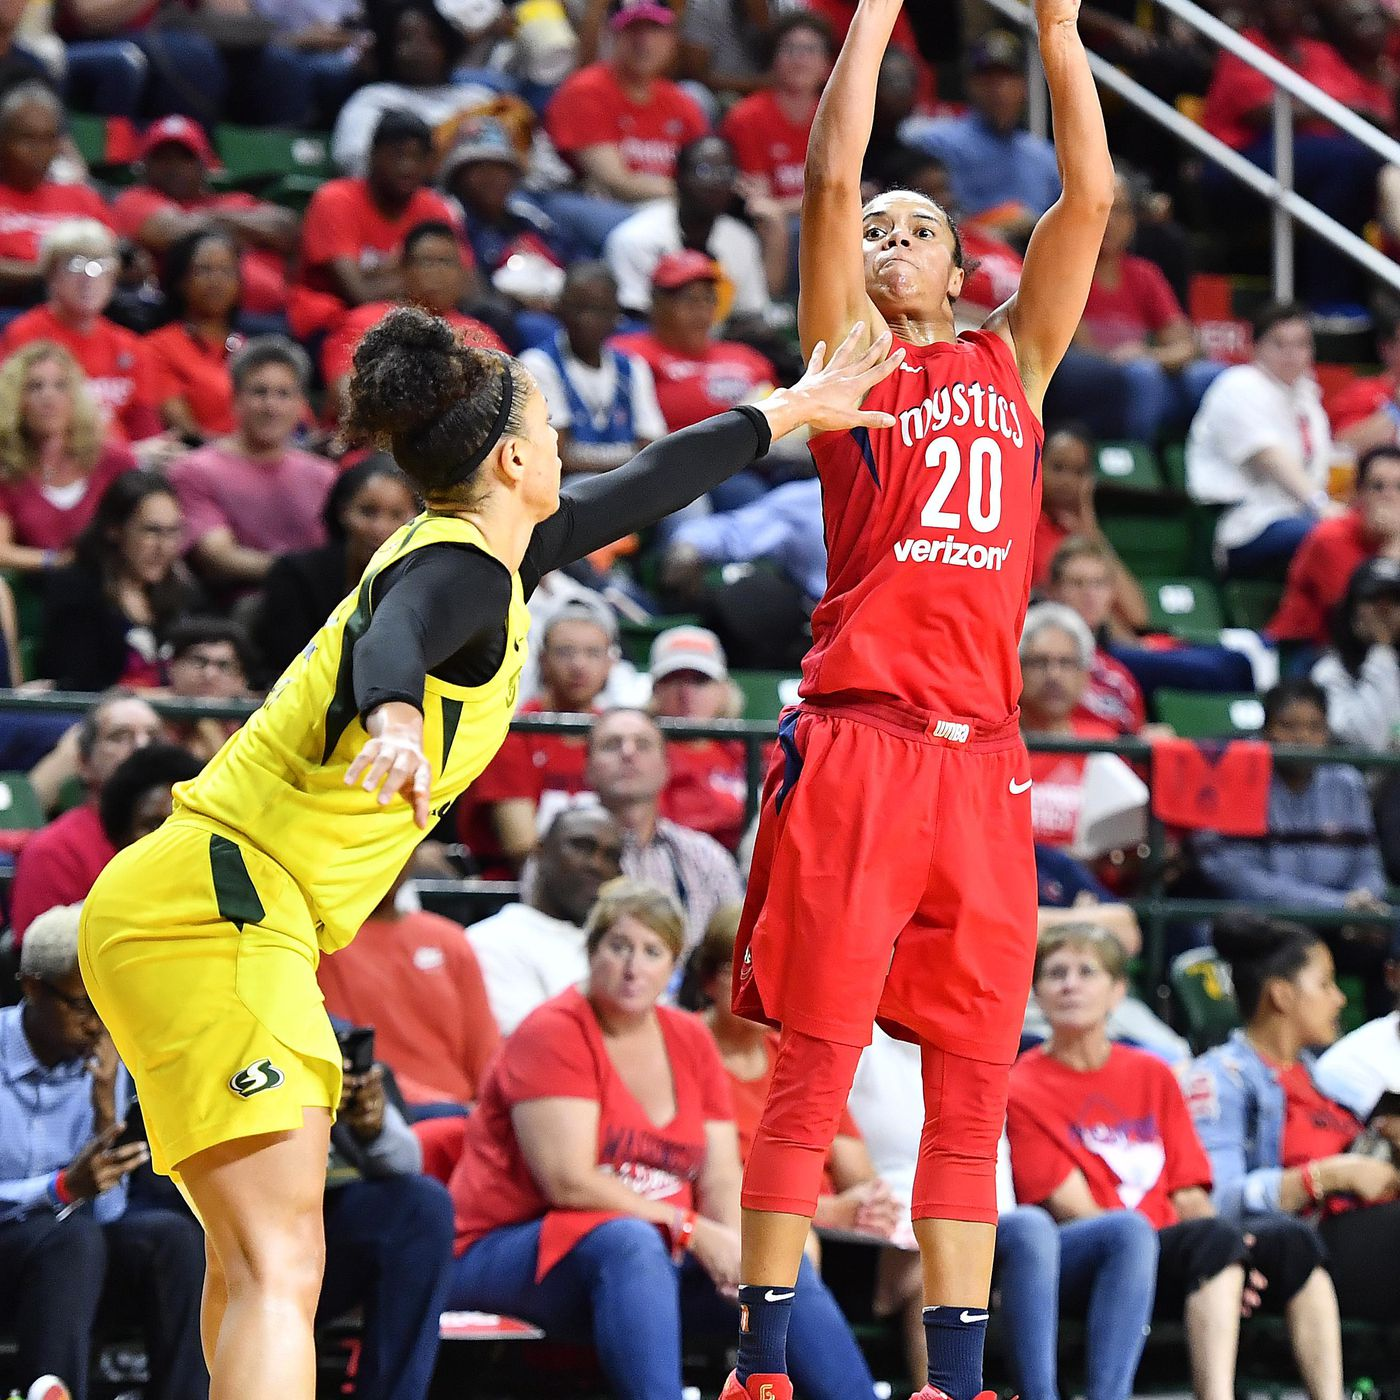 5452f0cd44a2 The Maryland women s basketball 2019 WNBA preview - Testudo Times